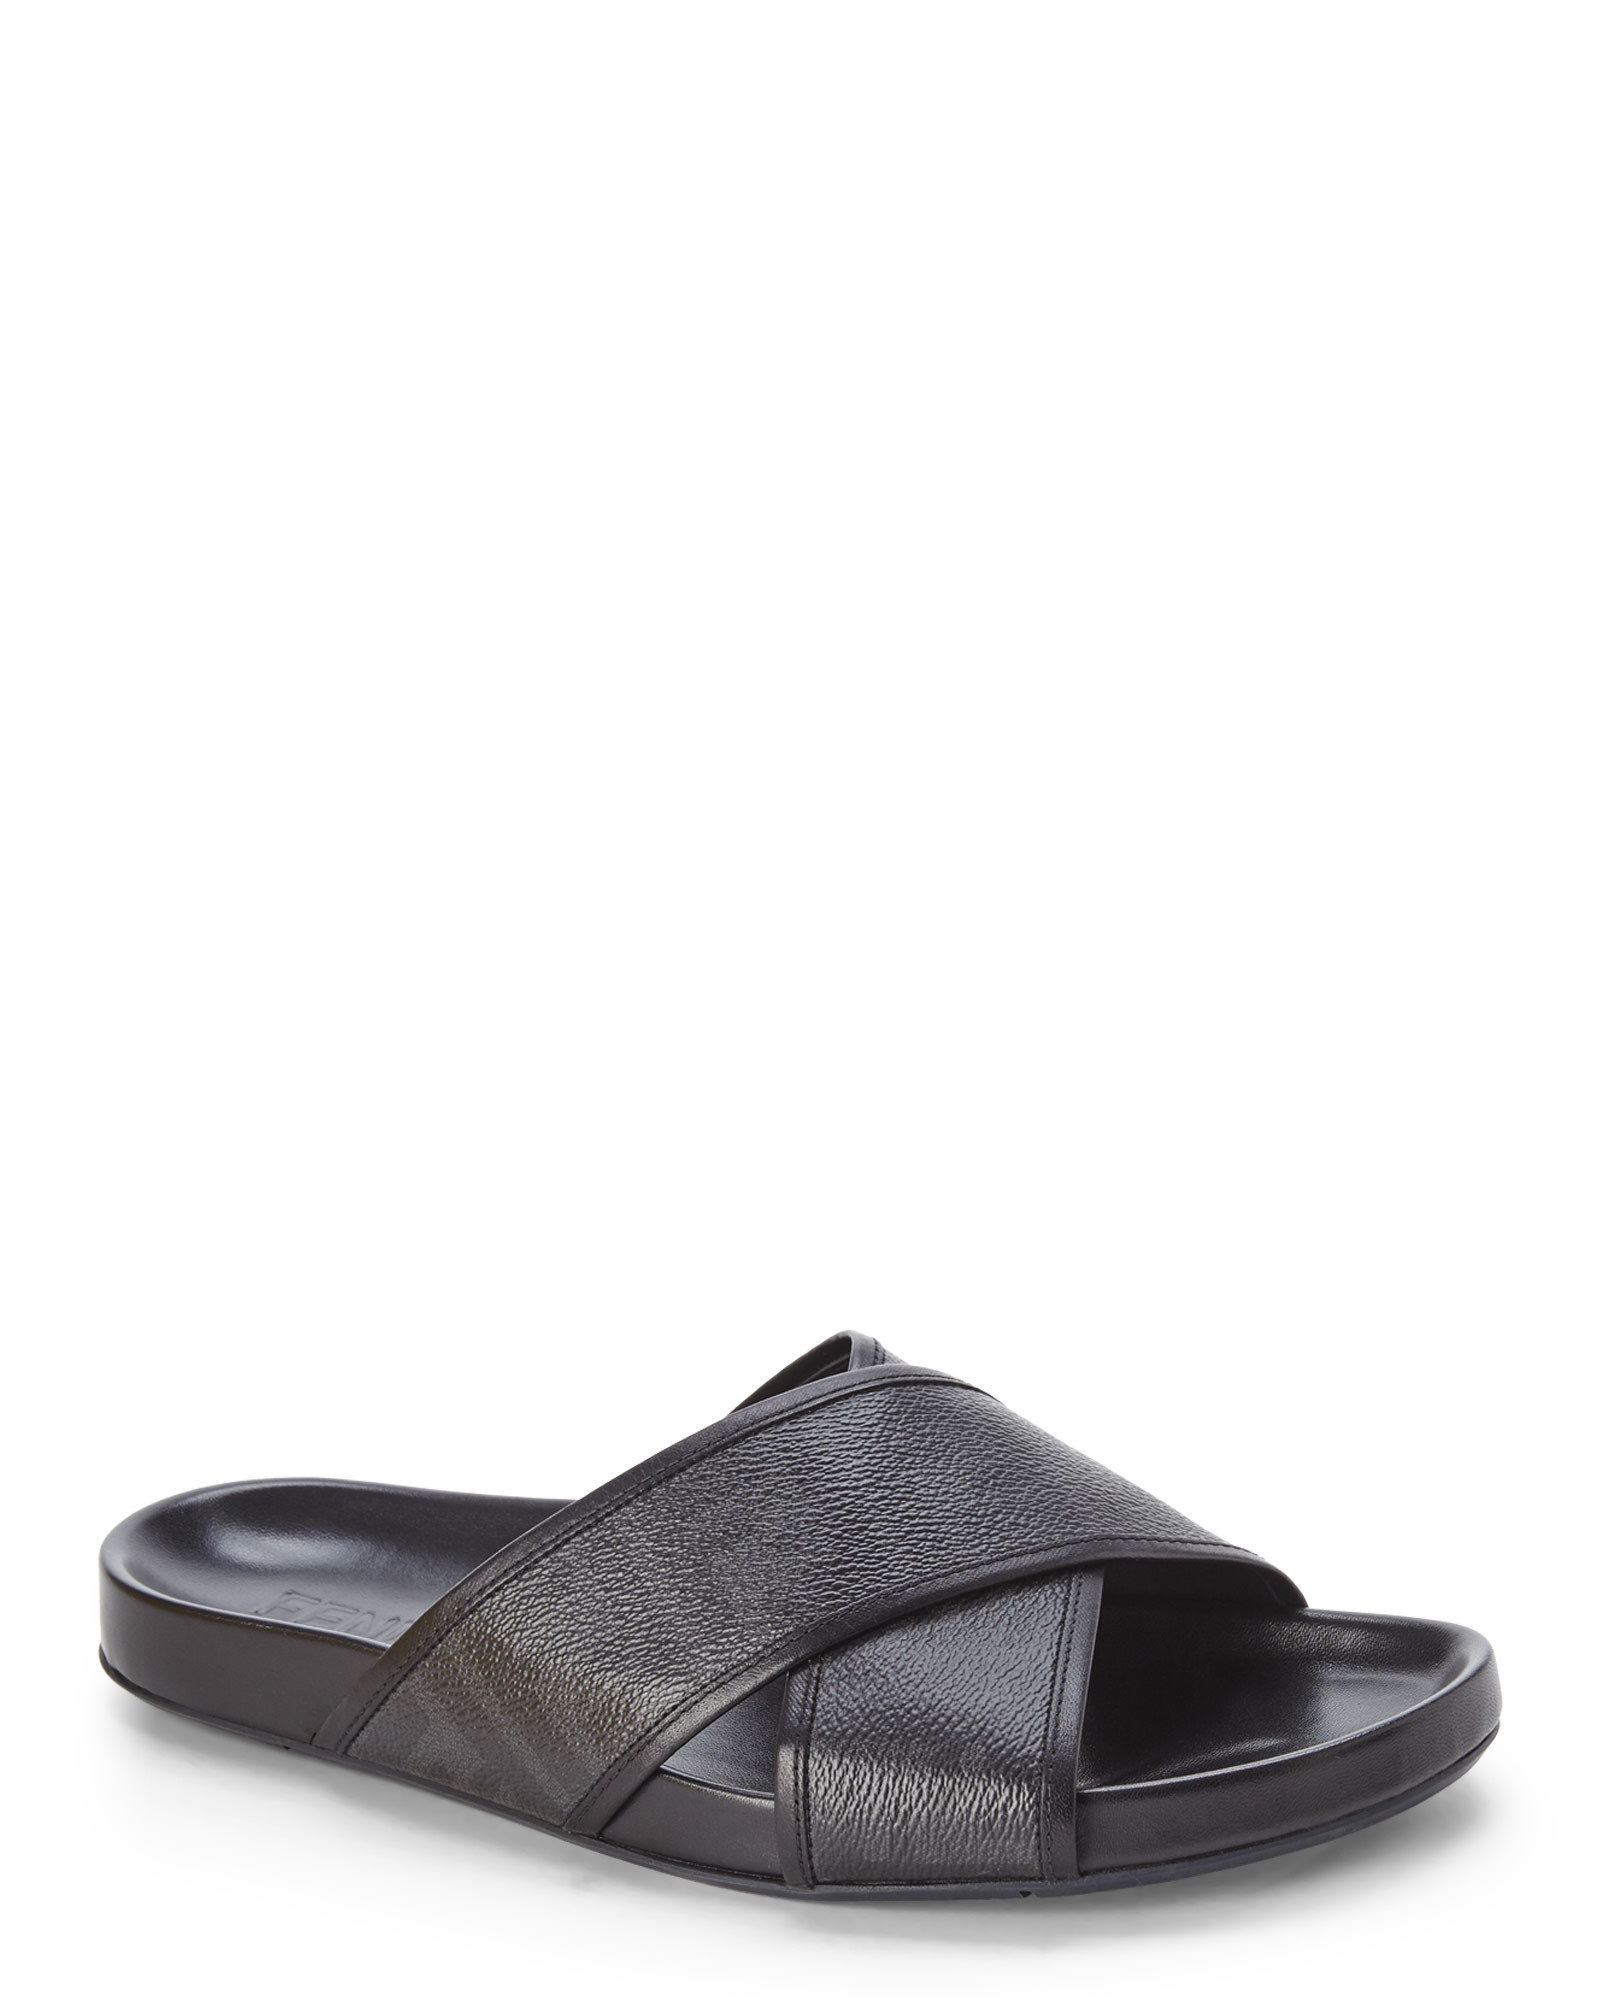 Fendi Black Zucca Cross Strap Footbed Sandals In Black For